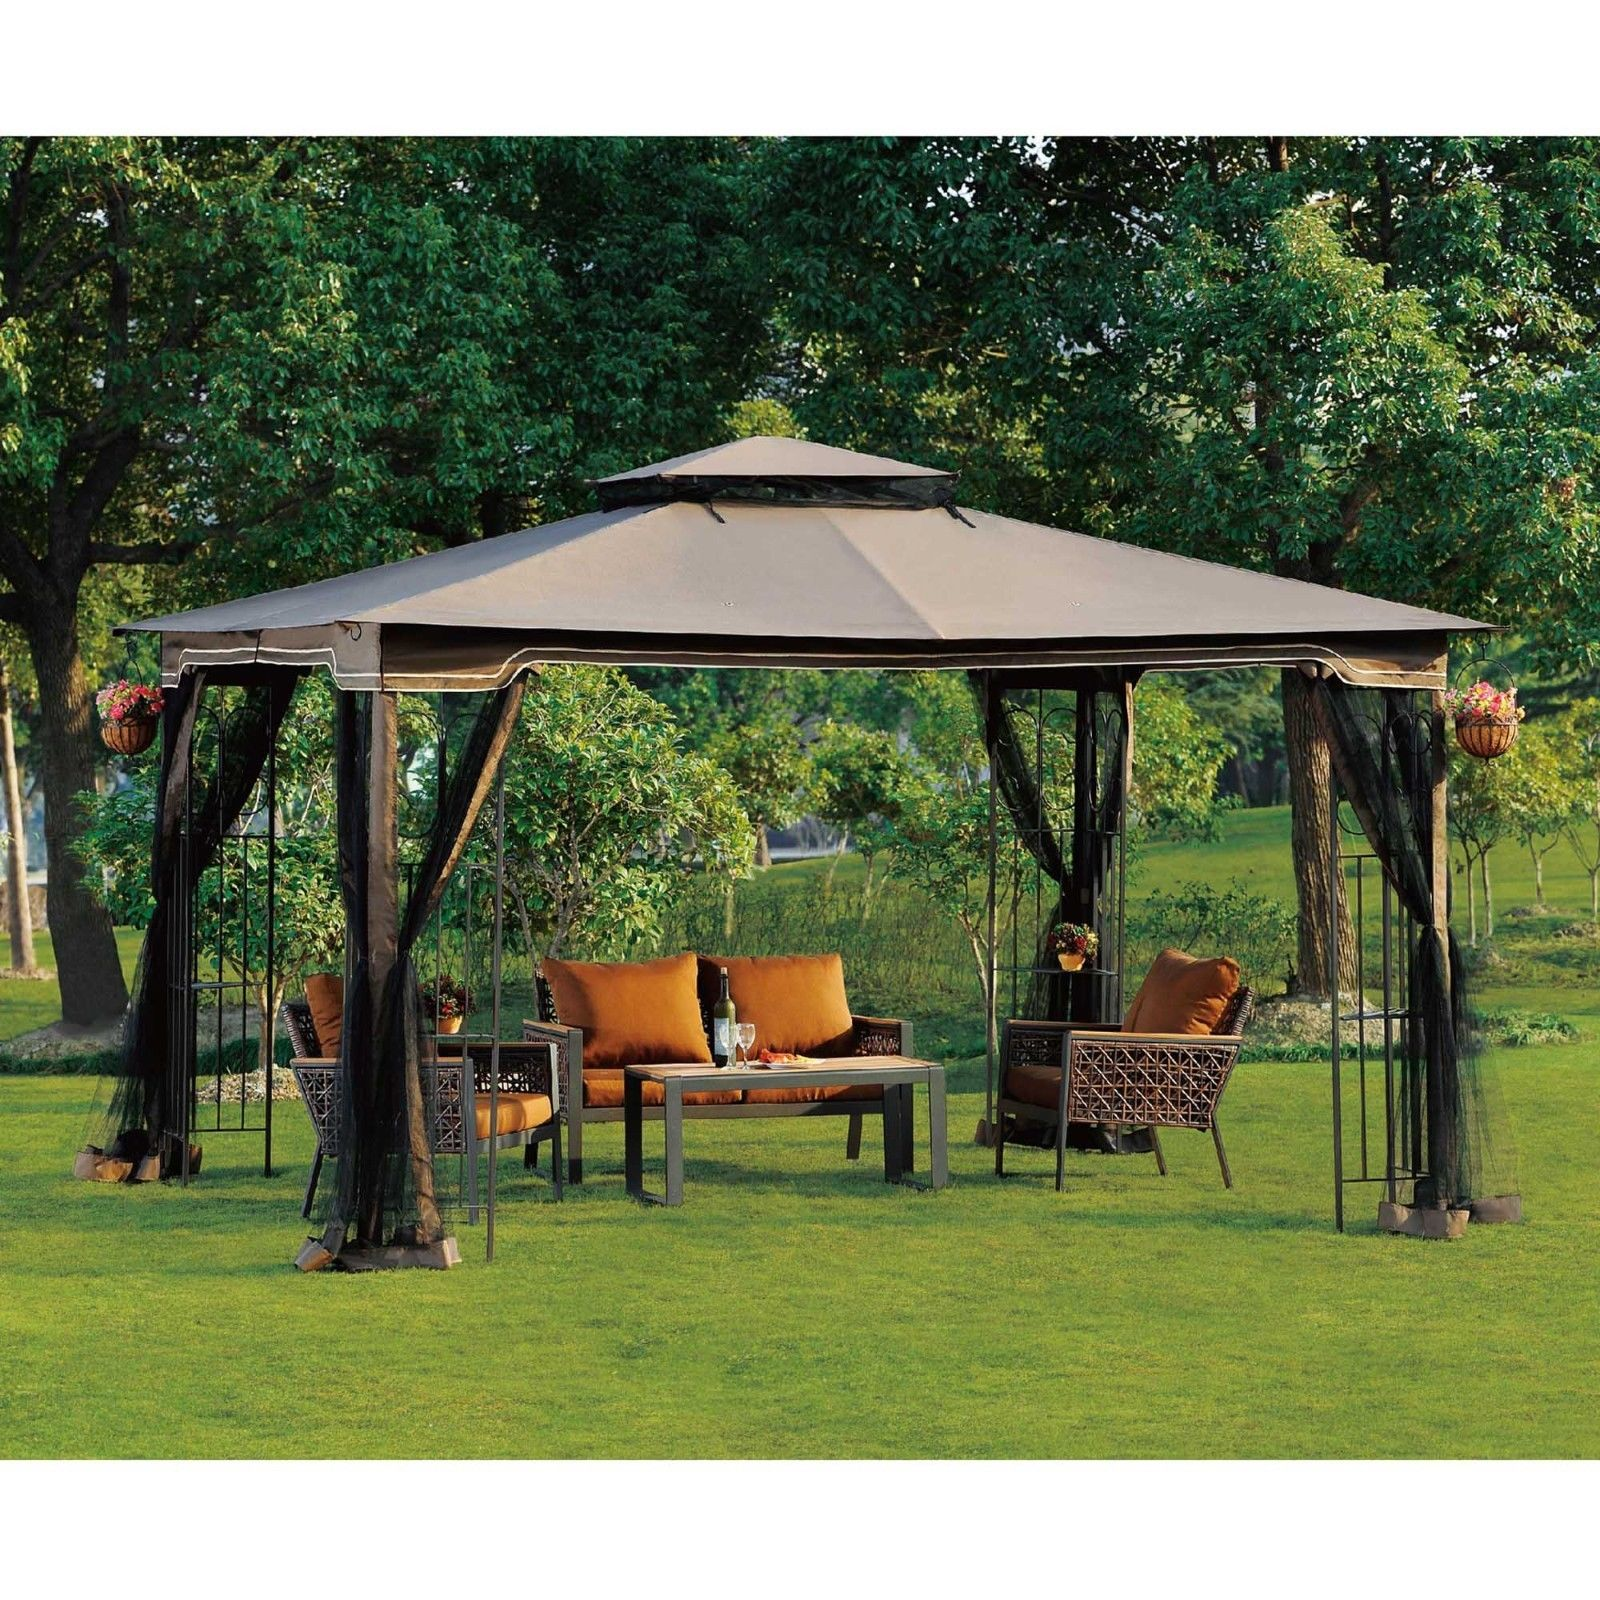 Modern Patio Tents Design and Ideas